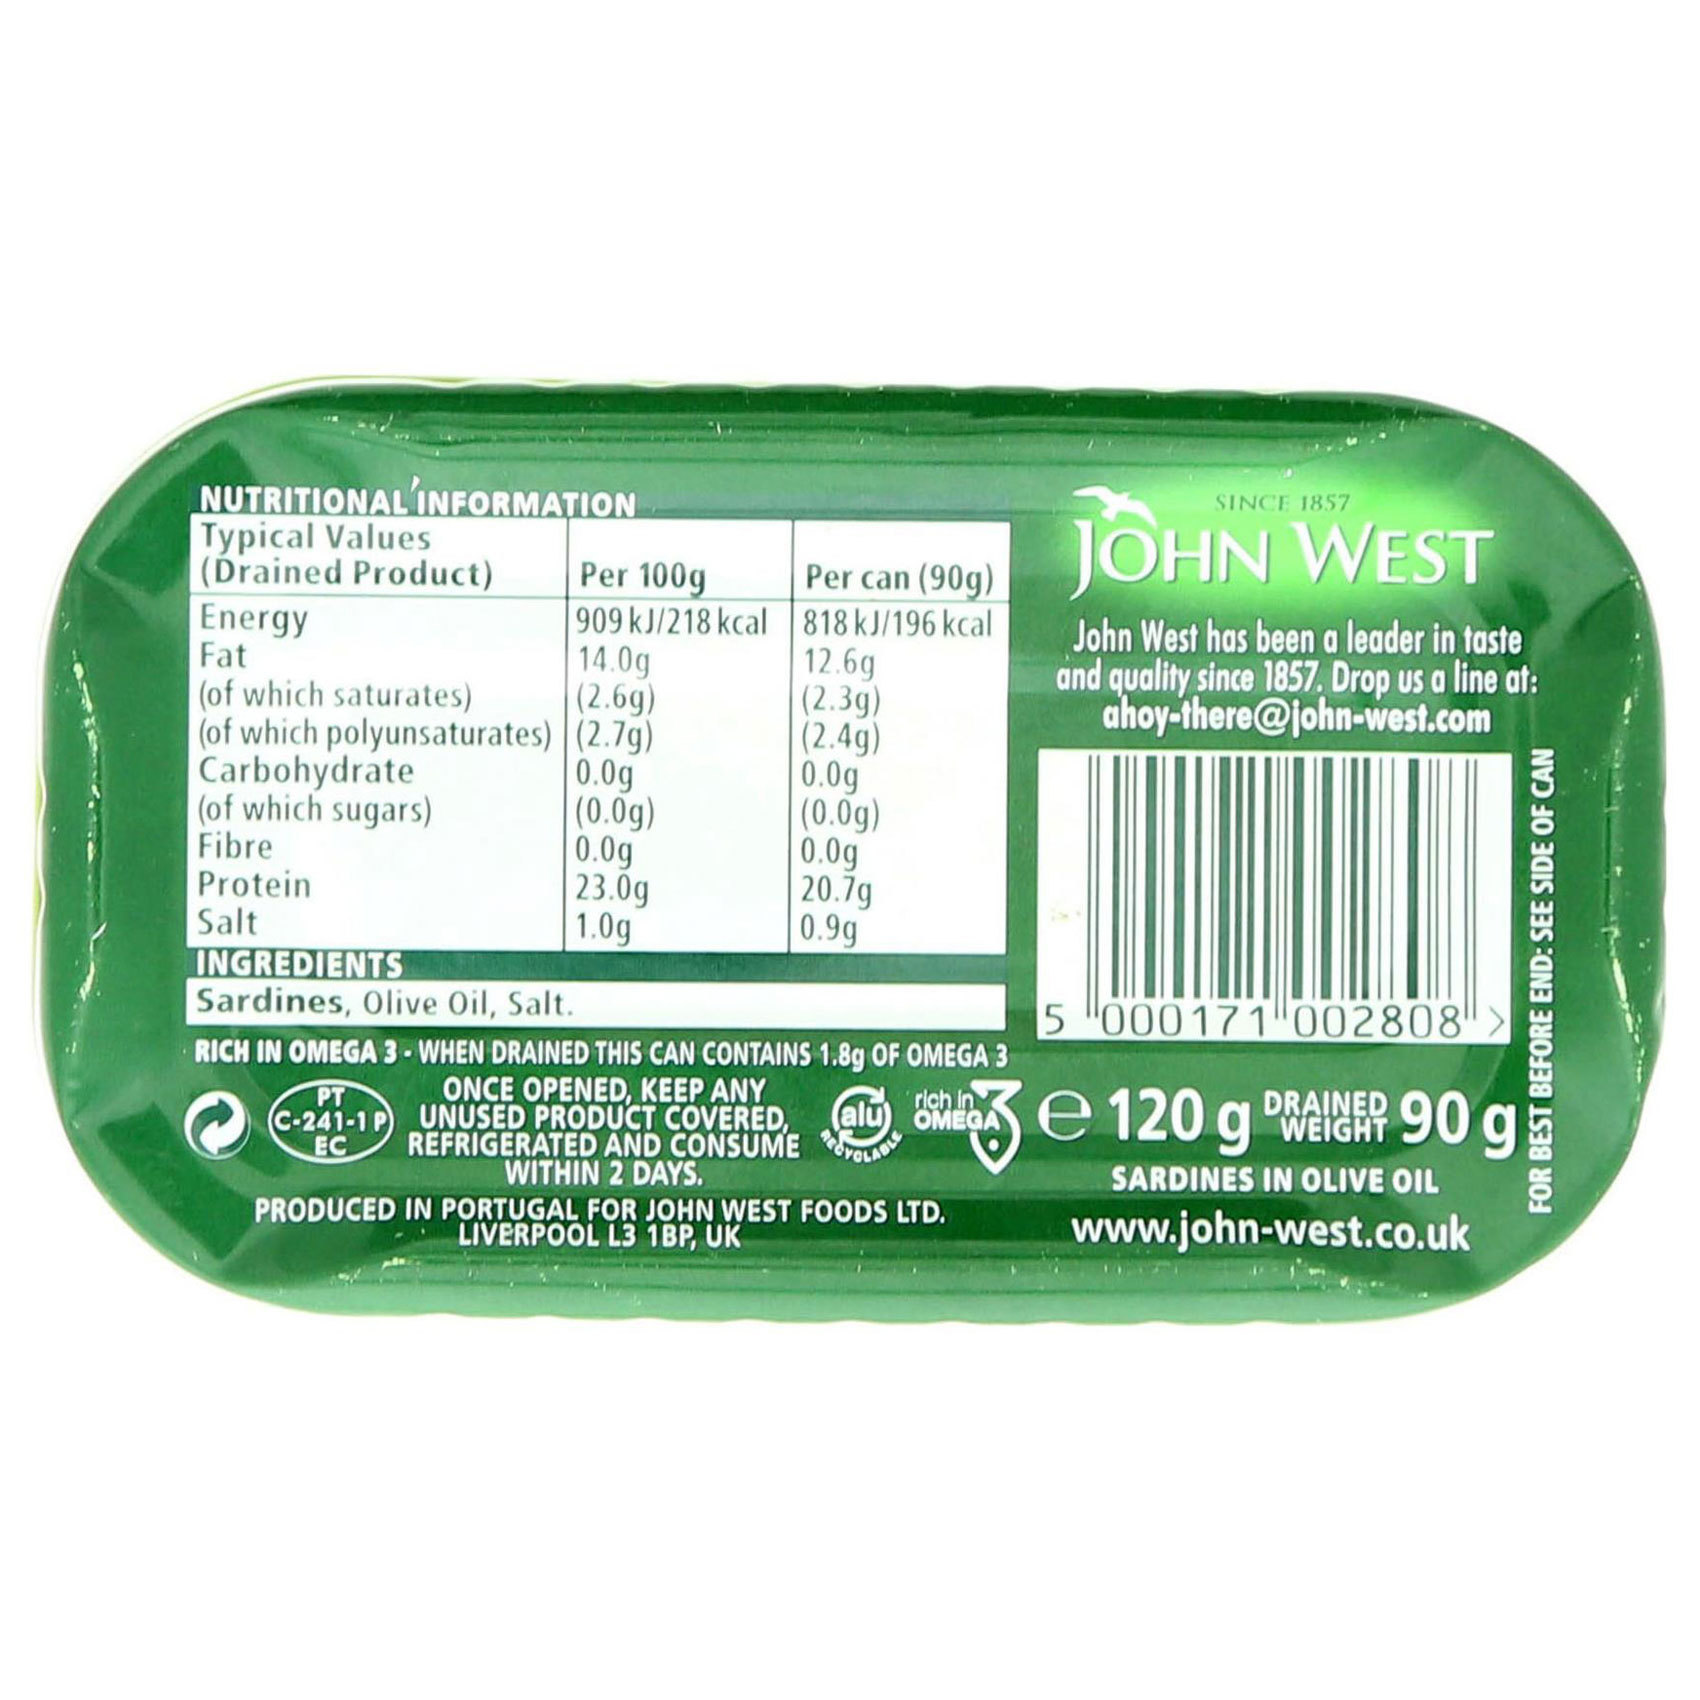 JOHN WEST SARDINES IN OLIVE OIL 120